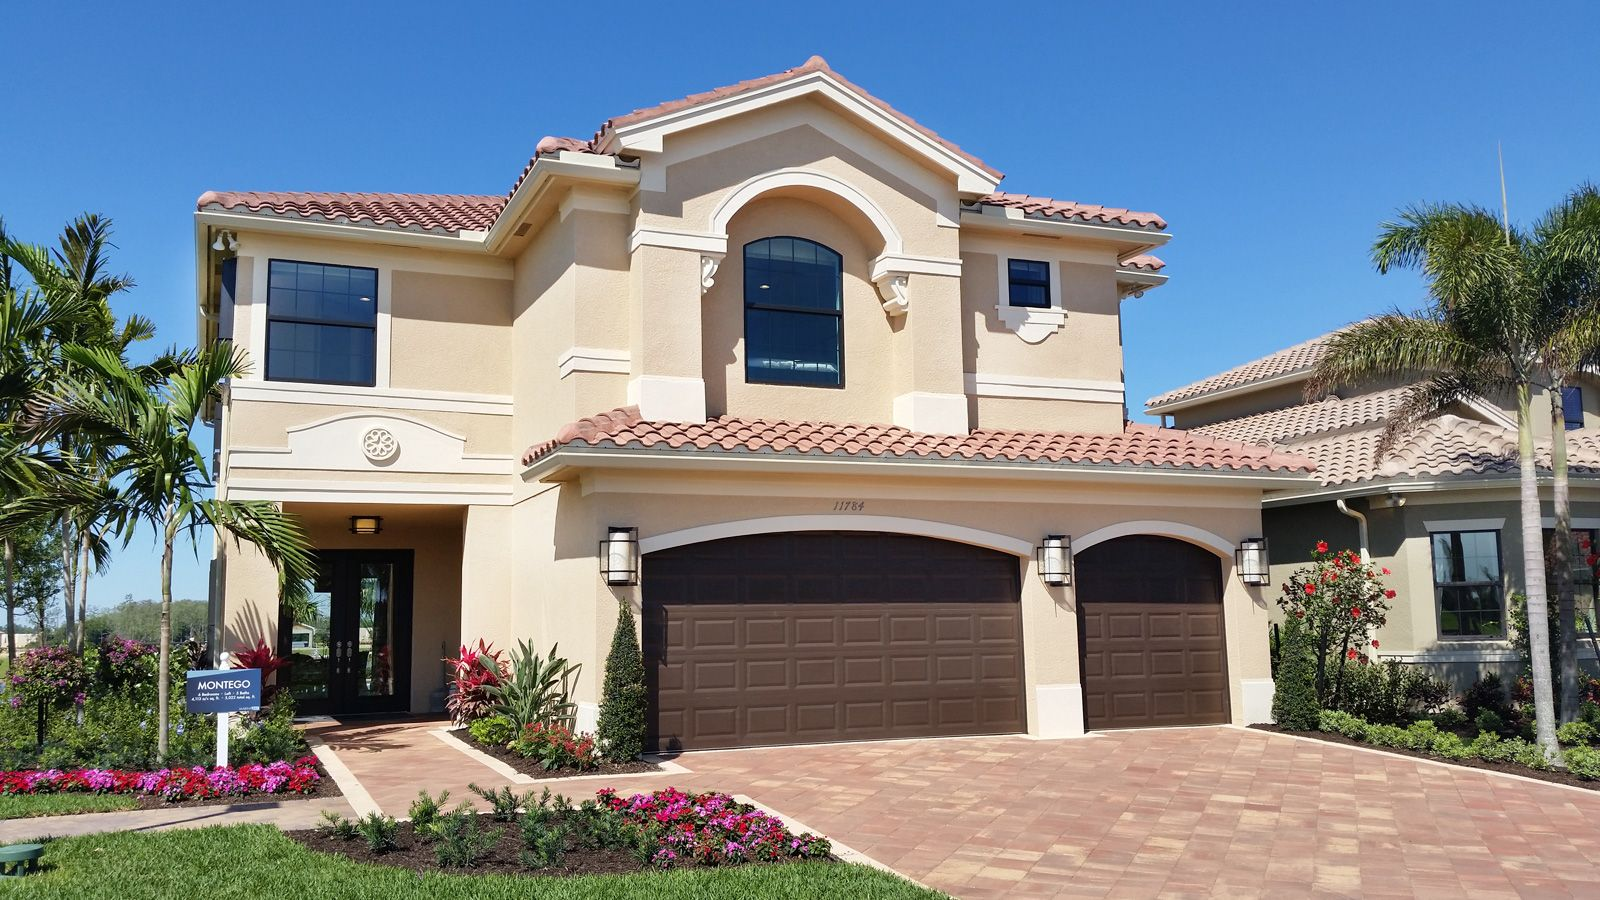 Cape coral real estate and homes for sale topix for Florida house builders